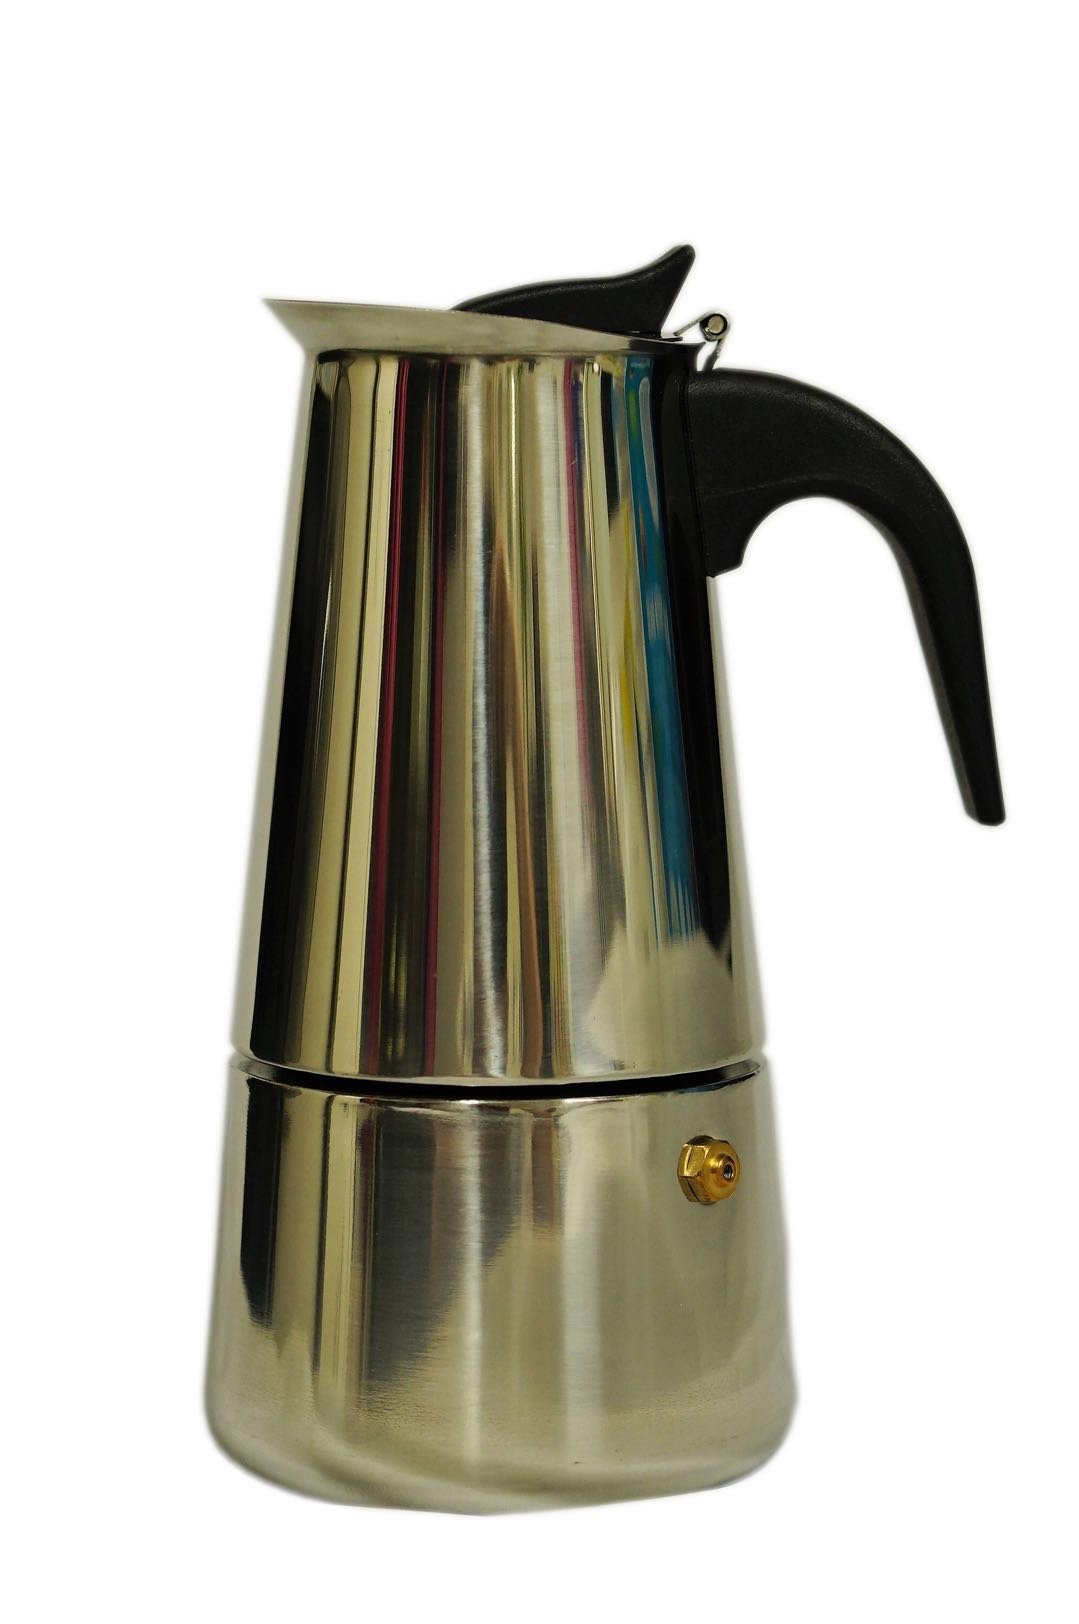 Modin Stovetop Espresso Coffee Maker Moka Pot,18/8 Stainless Steel,9-Cup